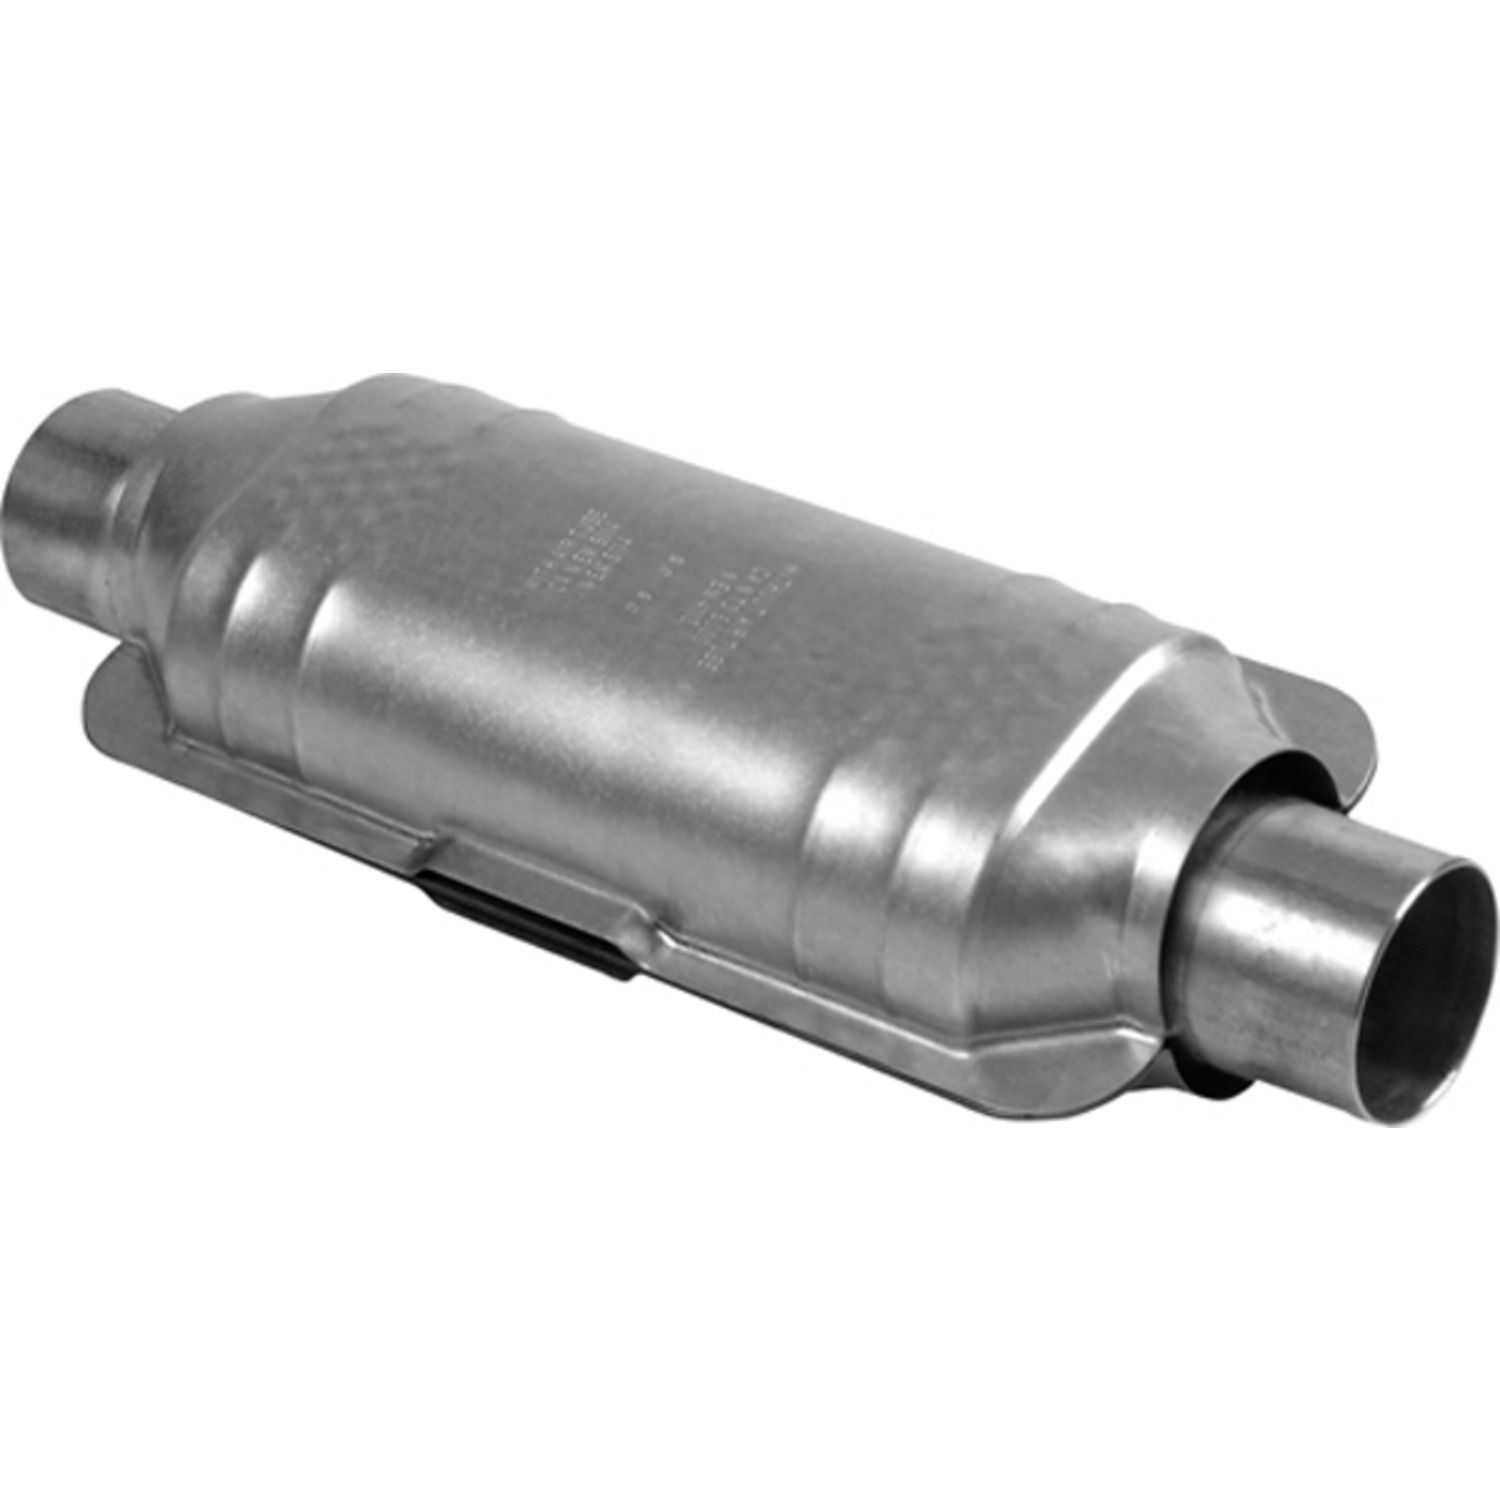 1997 Ford F150 Catalytic Converter Rear 8 Cyl 54l Eastern 83176 Legal Note Not For Sale Or Use In The State Of California Ny Vehicles With: 2007 Ford F150 Catalytic Converter Replacement At Woreks.co